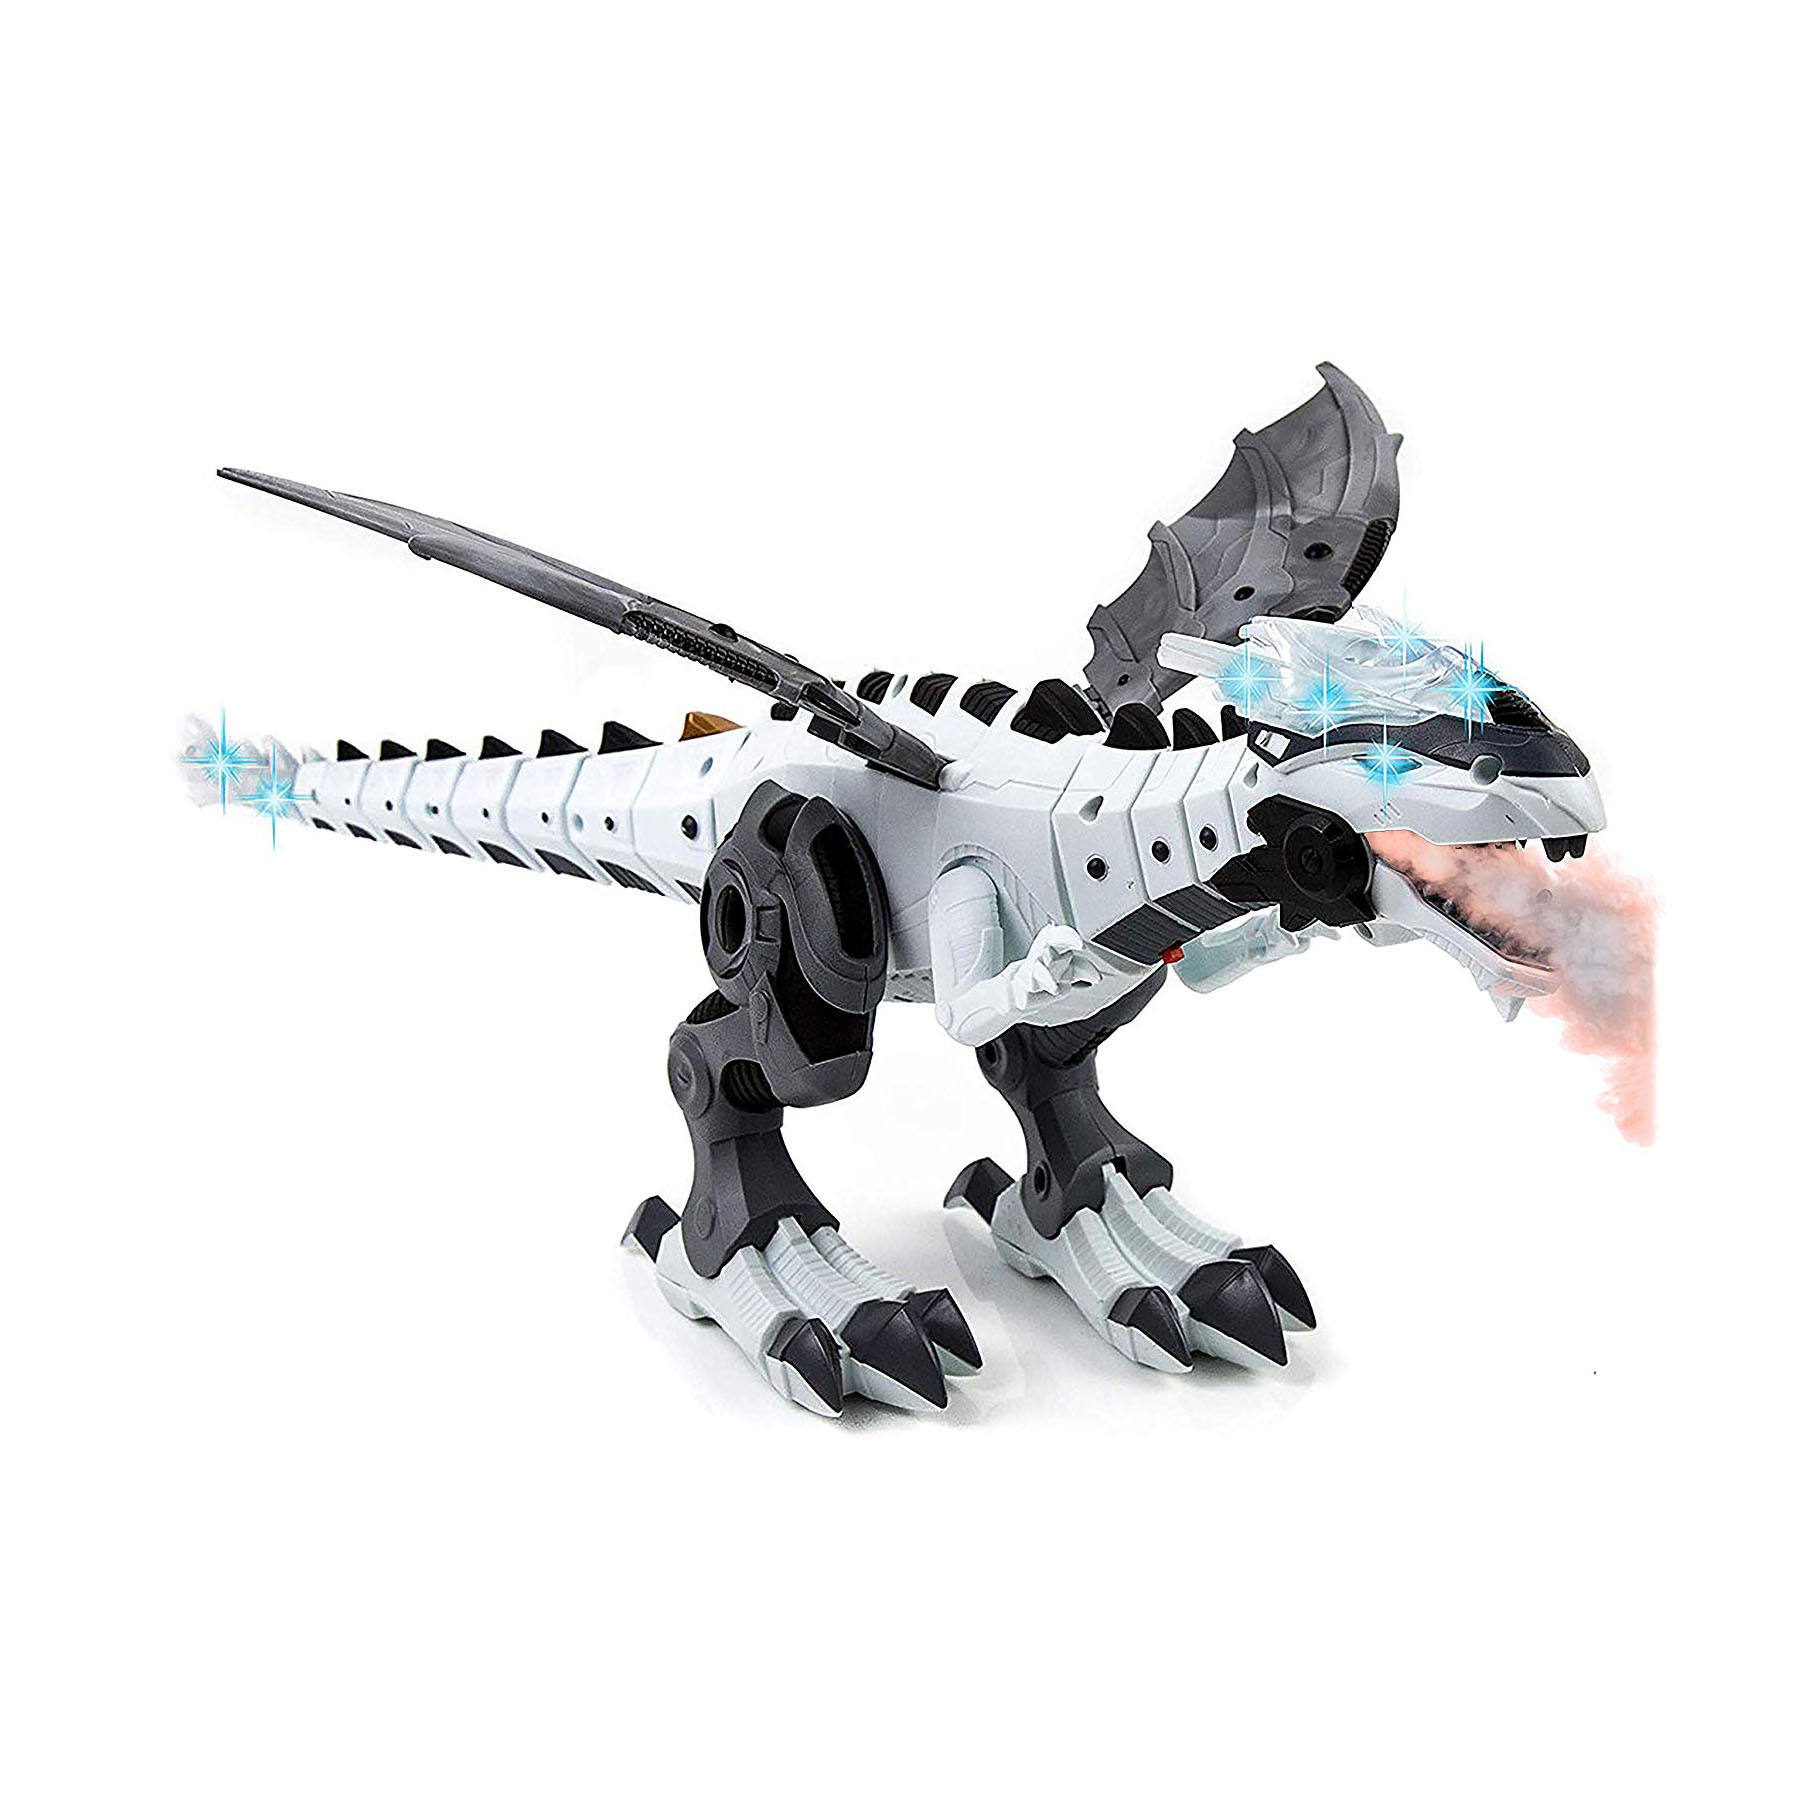 Mist Spray Dinosaur Robot Toy for Kids - Walking Dinosaur Fire Breathing Water Spray Mist with Red Light & Realistic Sounds